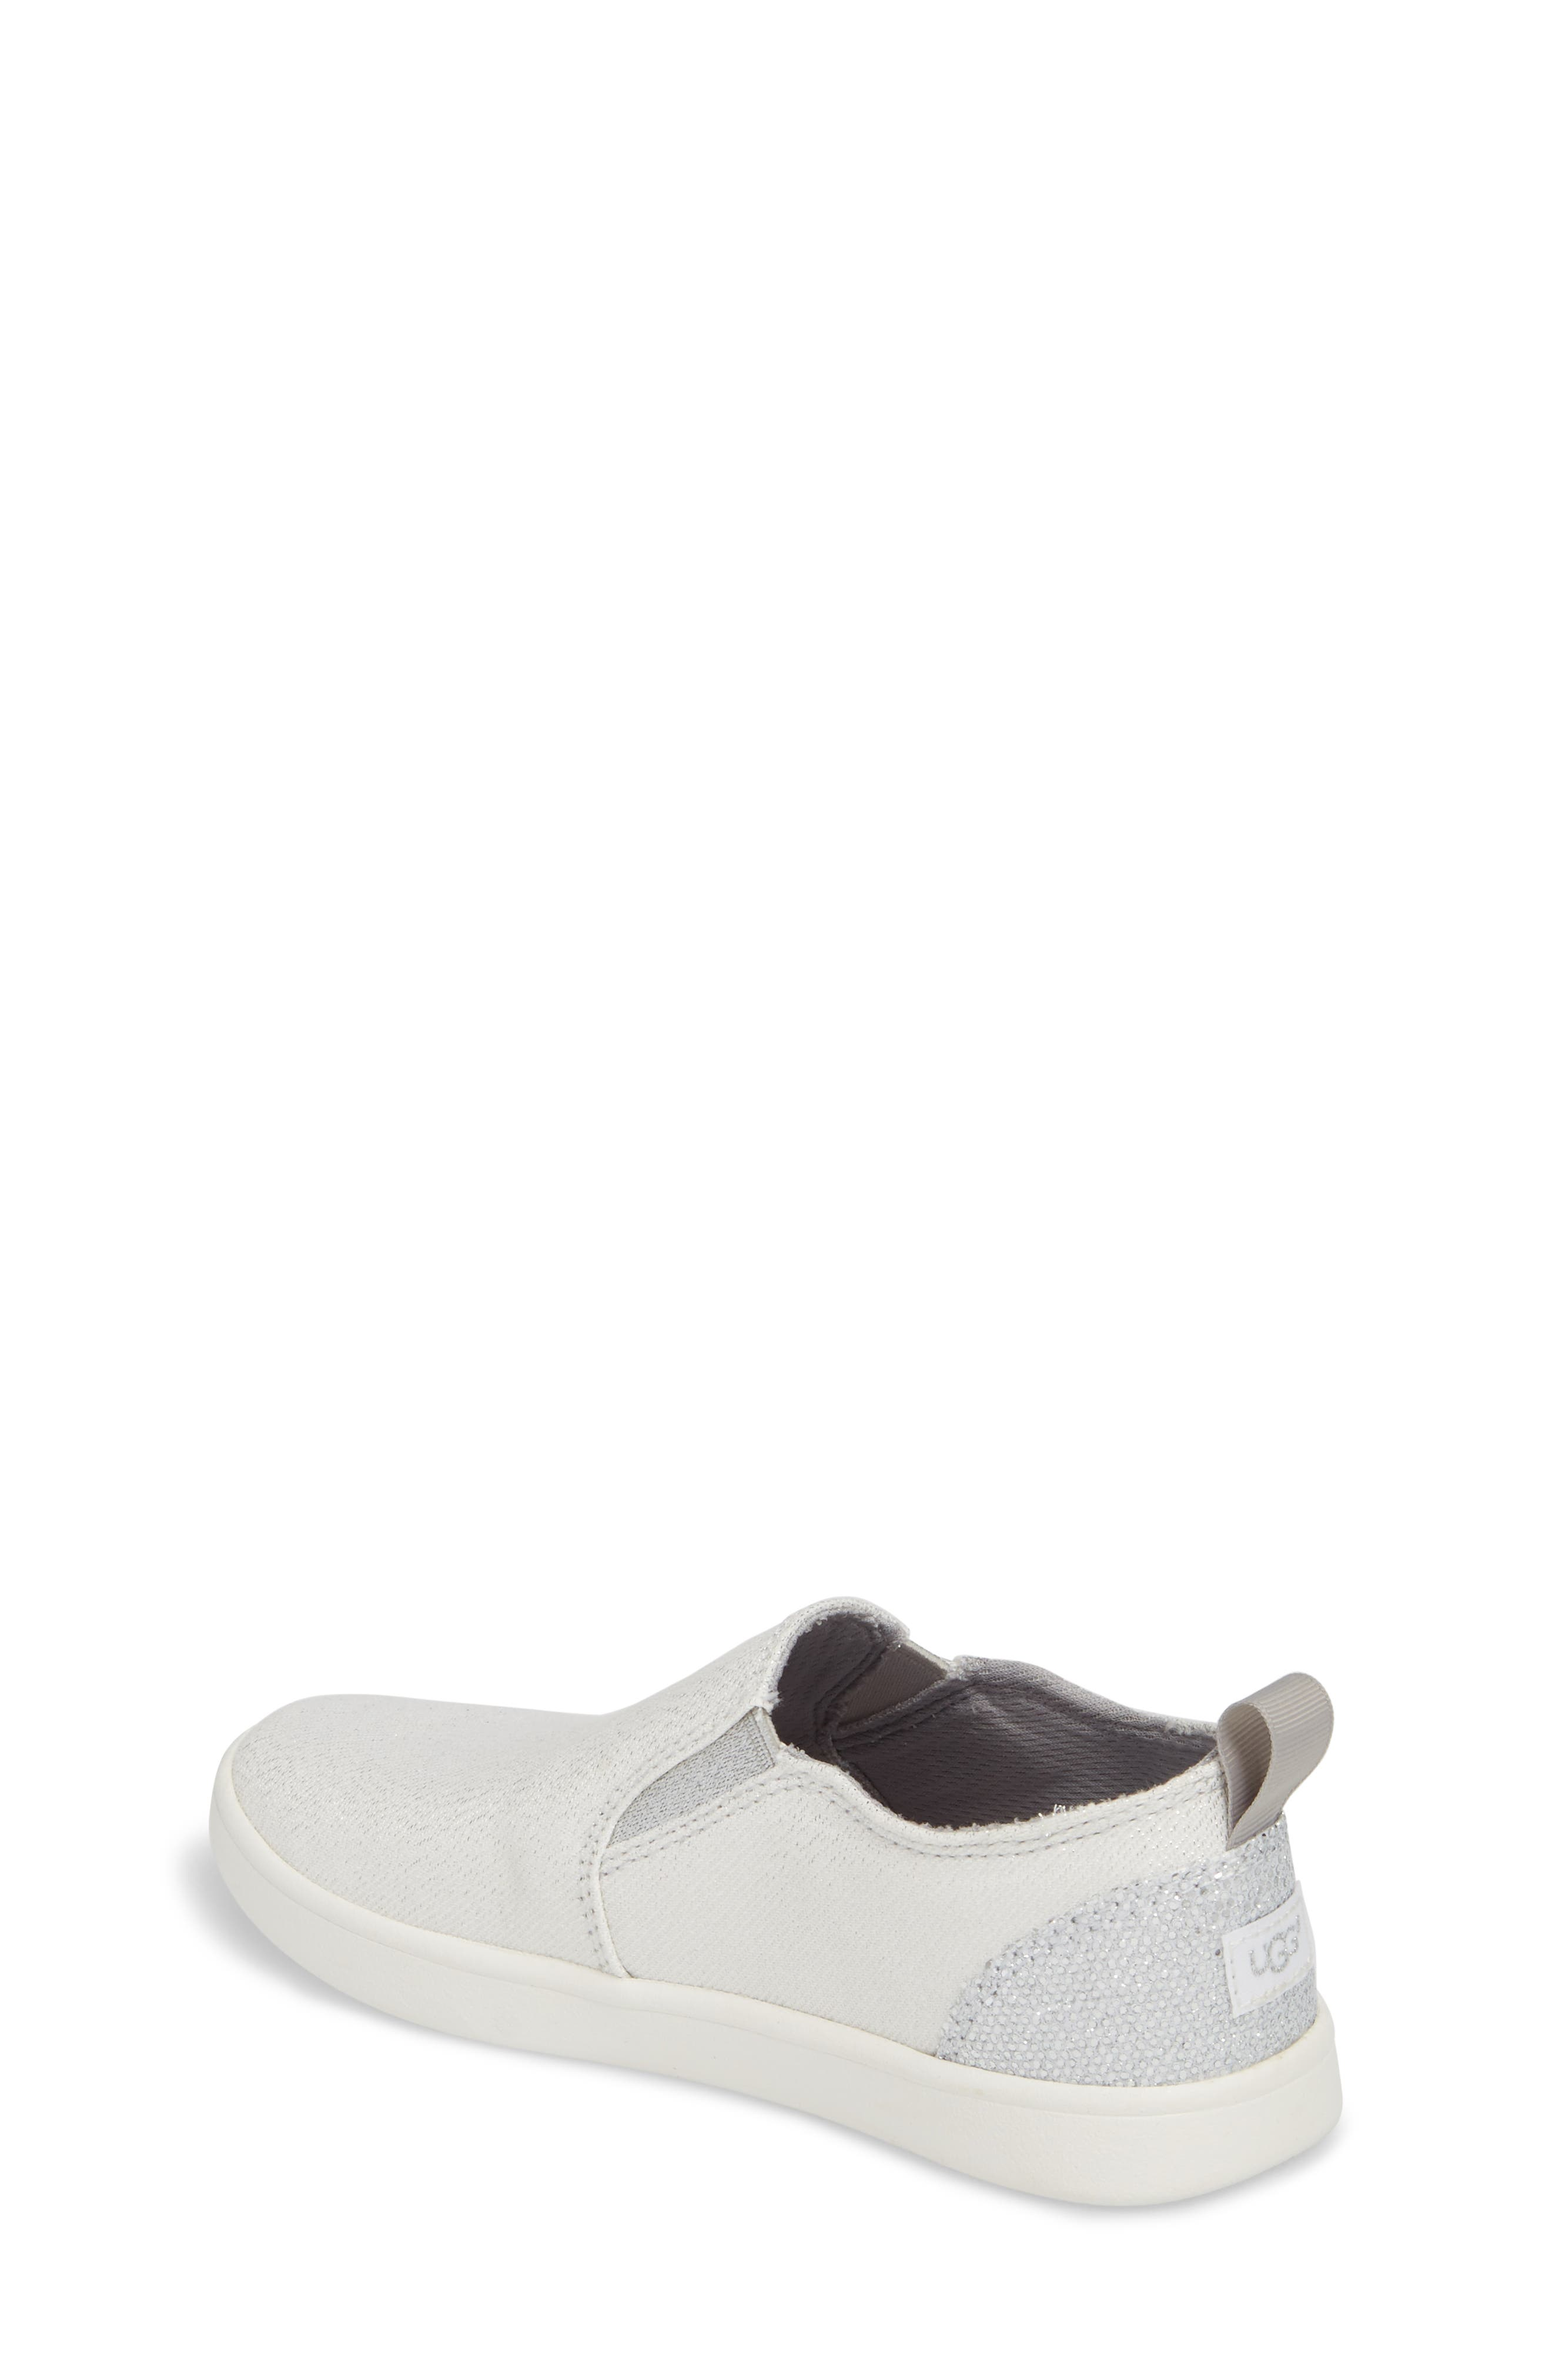 Gantry Sparkles Slip-On Sneaker,                             Alternate thumbnail 2, color,                             Silver